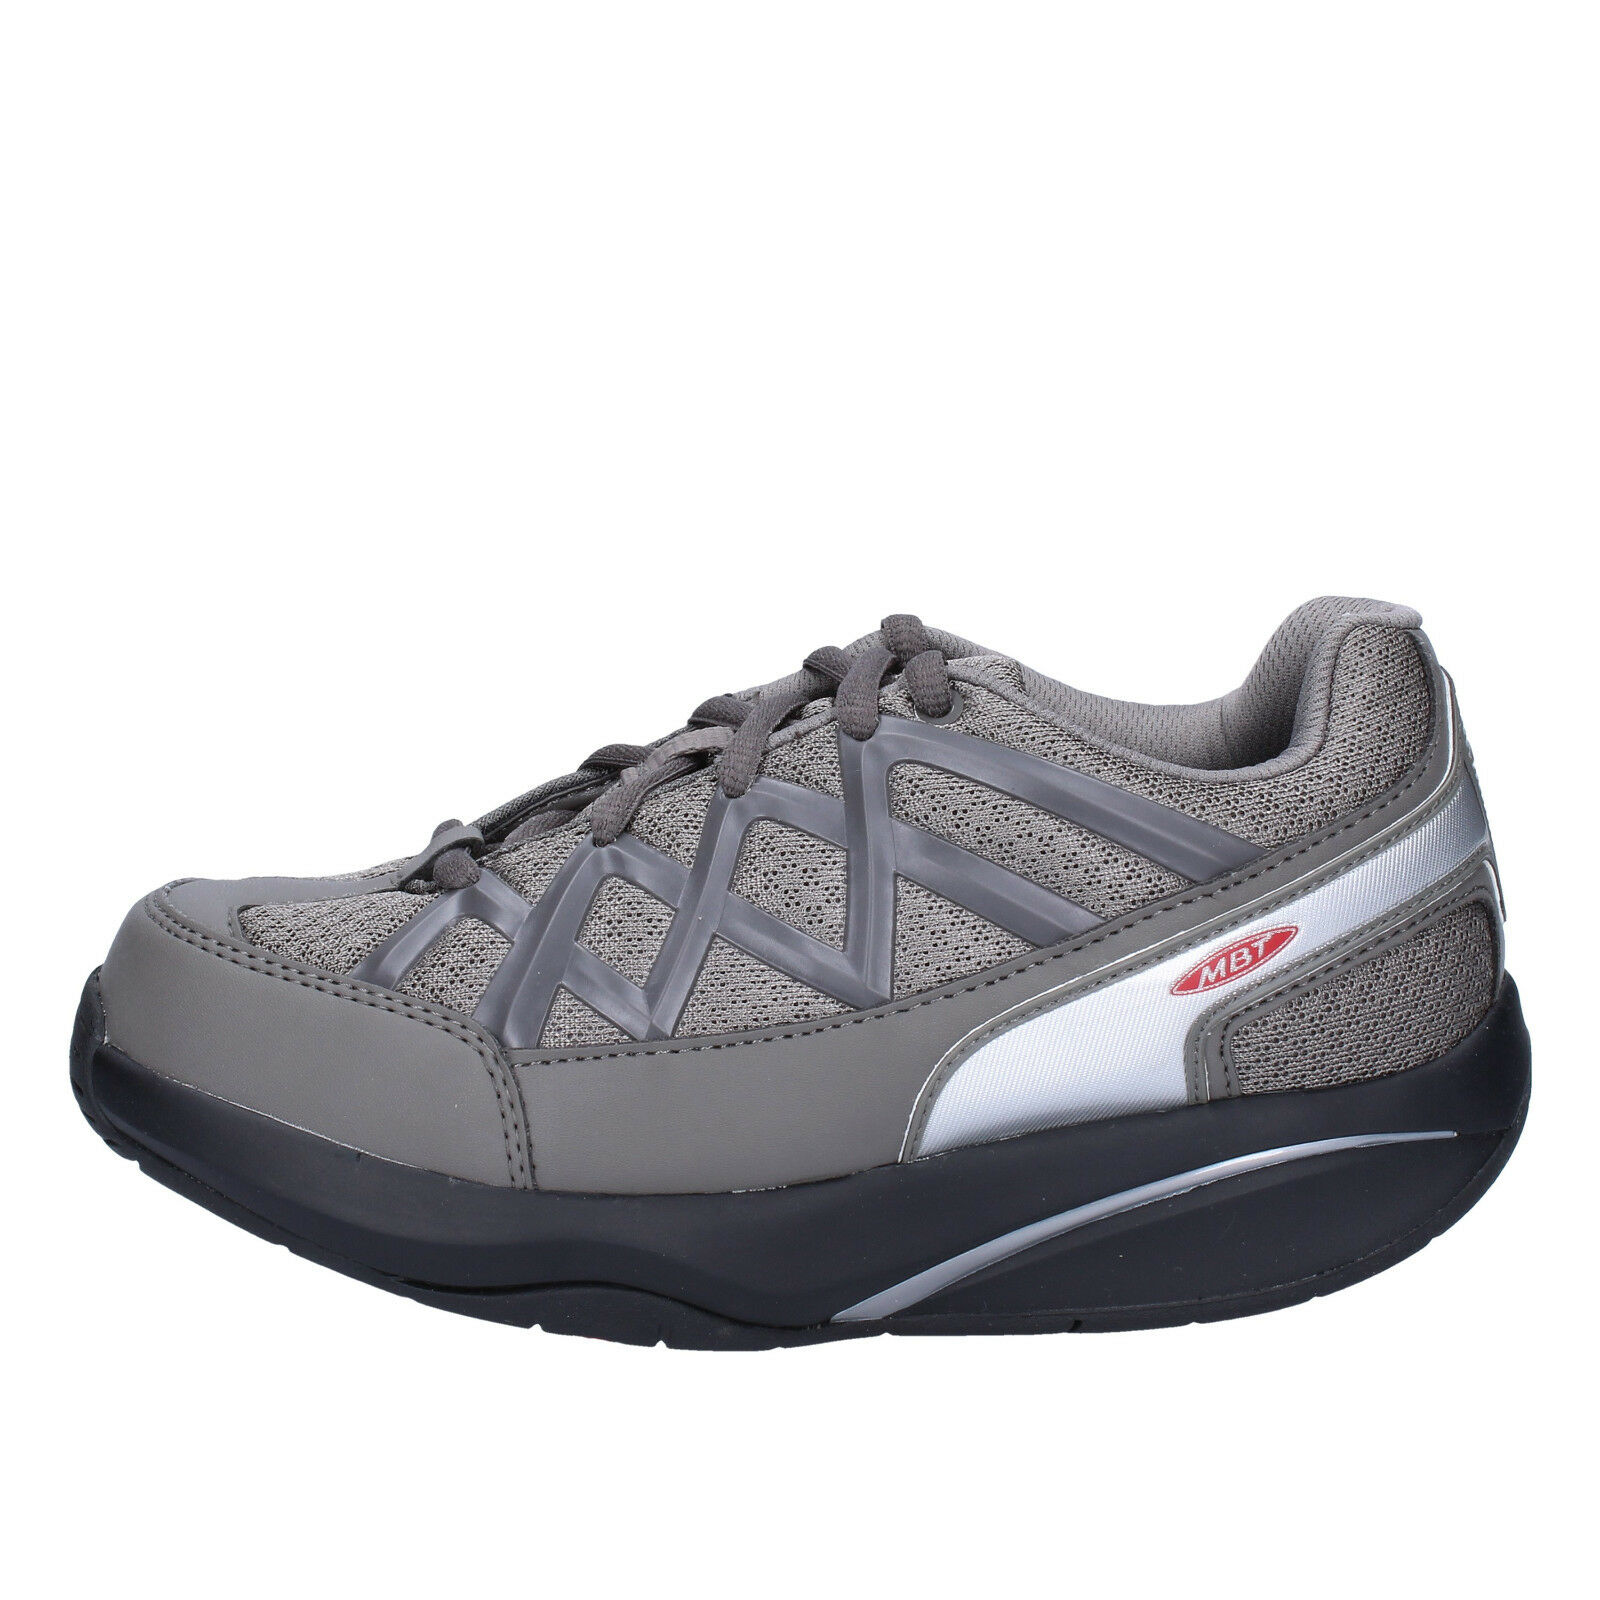 Womens shoes MBT 3 () sneakers grey textile dynamic AB390-35